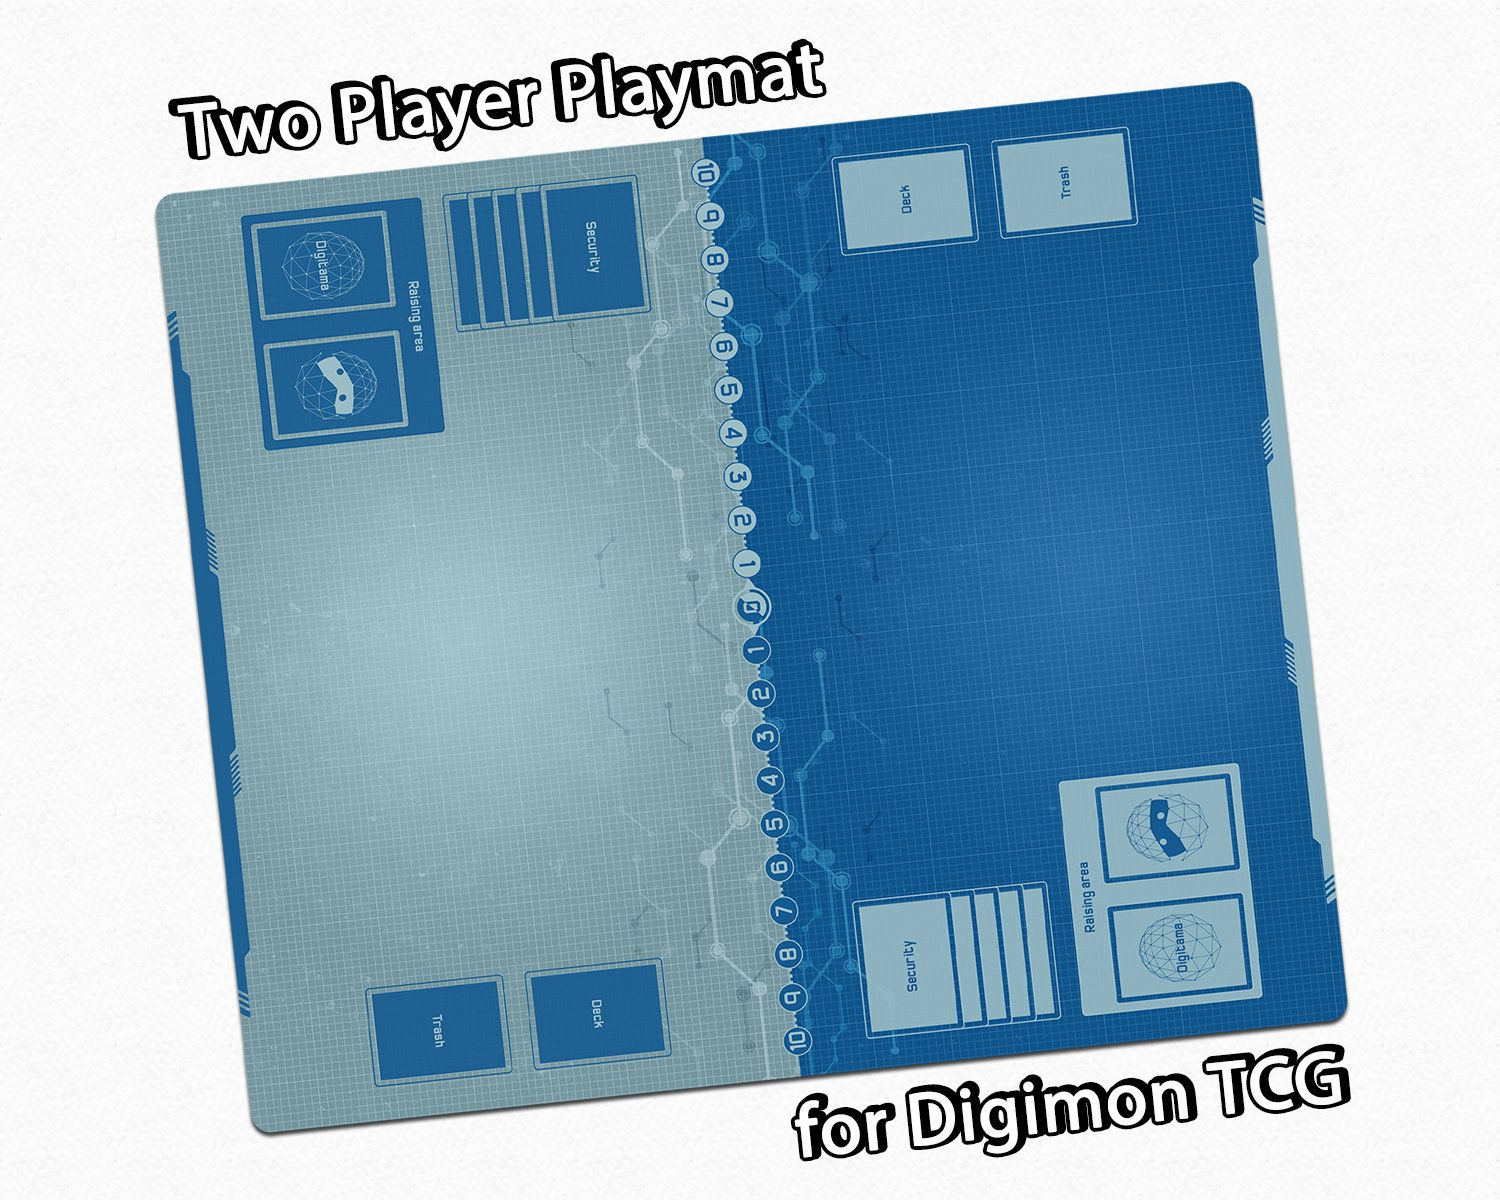 Two Player Digimon Tcg Playmat With Custom Field Zones For Stylish Organized Gaming Card Game Mat With Memory Gauge And Digitama Deck Area Card Game Mat Playmat Digimon